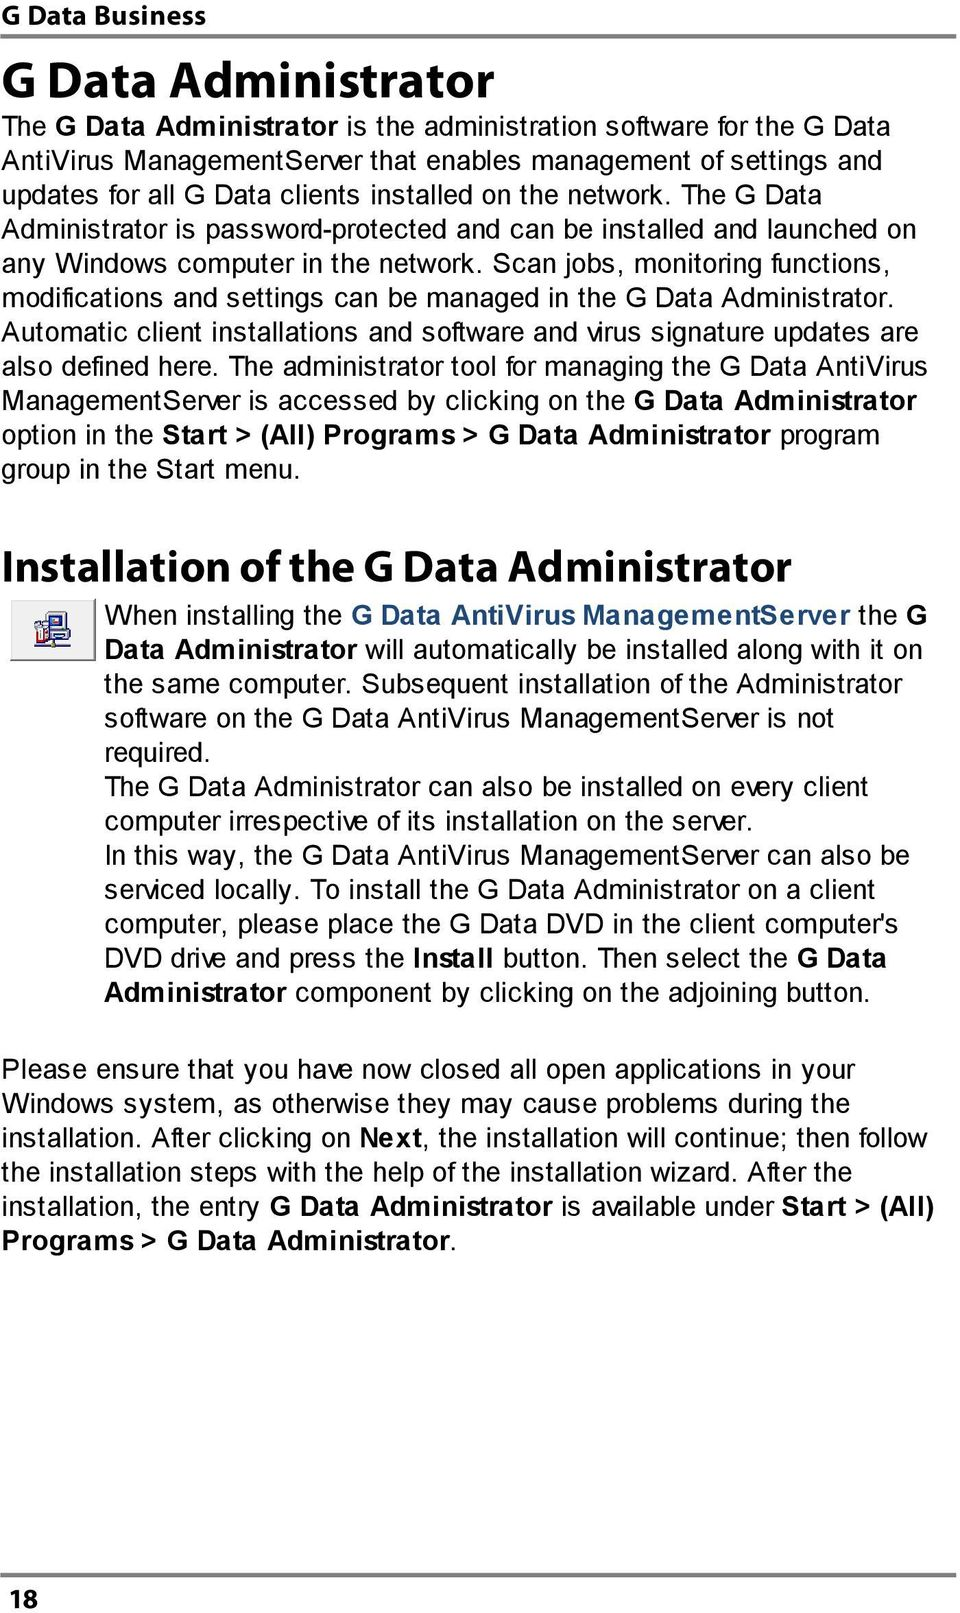 Scan jobs, monitoring functions, modifications and settings can be managed in the G Data Administrator. Automatic client installations and software and virus signature updates are also defined here.